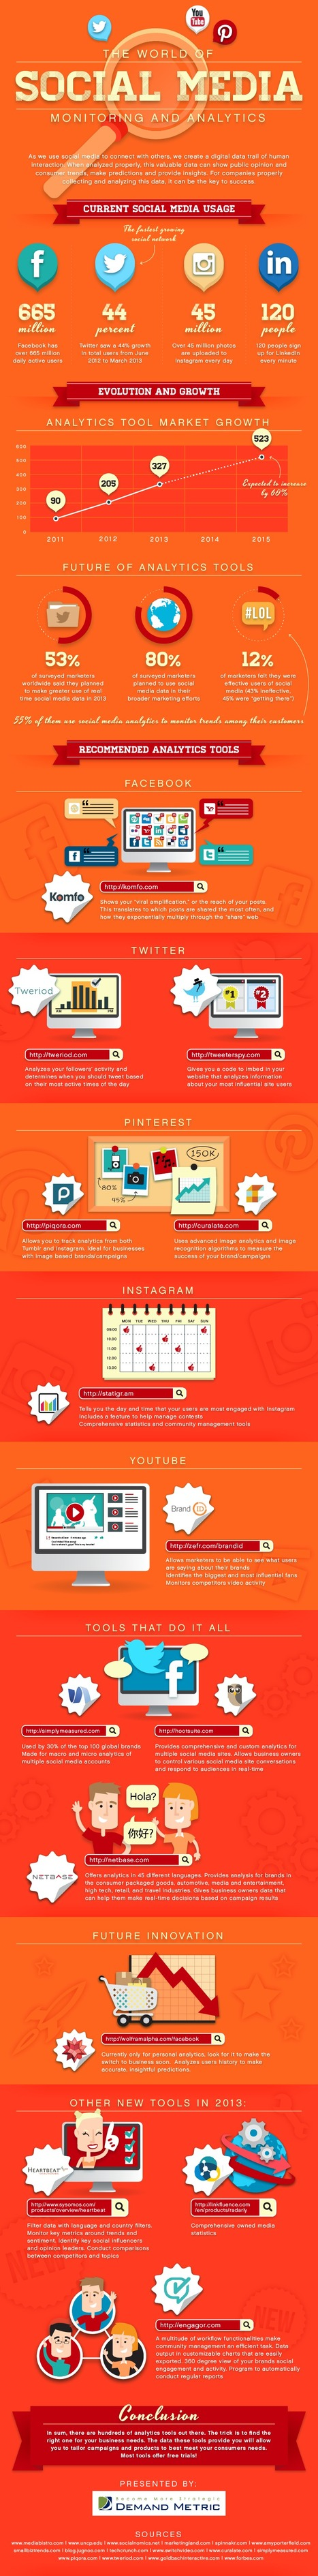 The World of Social Media Monitoring & Analytics  [infographic] | JOIN SCOOP.IT AND FOLLOW ME ON SCOOP.IT | Scoop.it